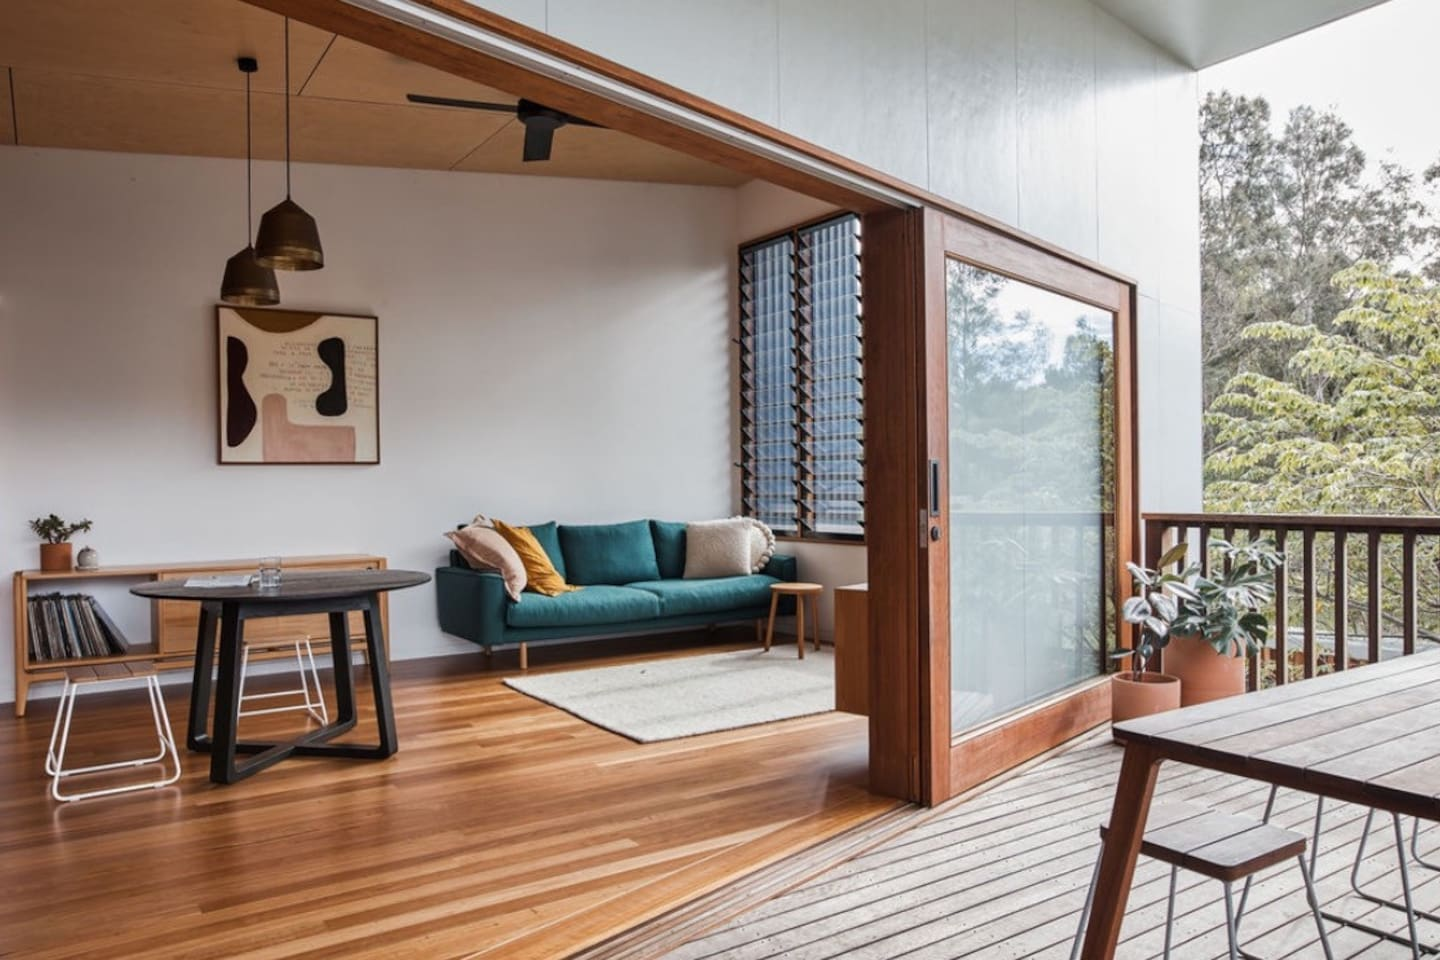 Living area opens up onto the deck to bring the outside in